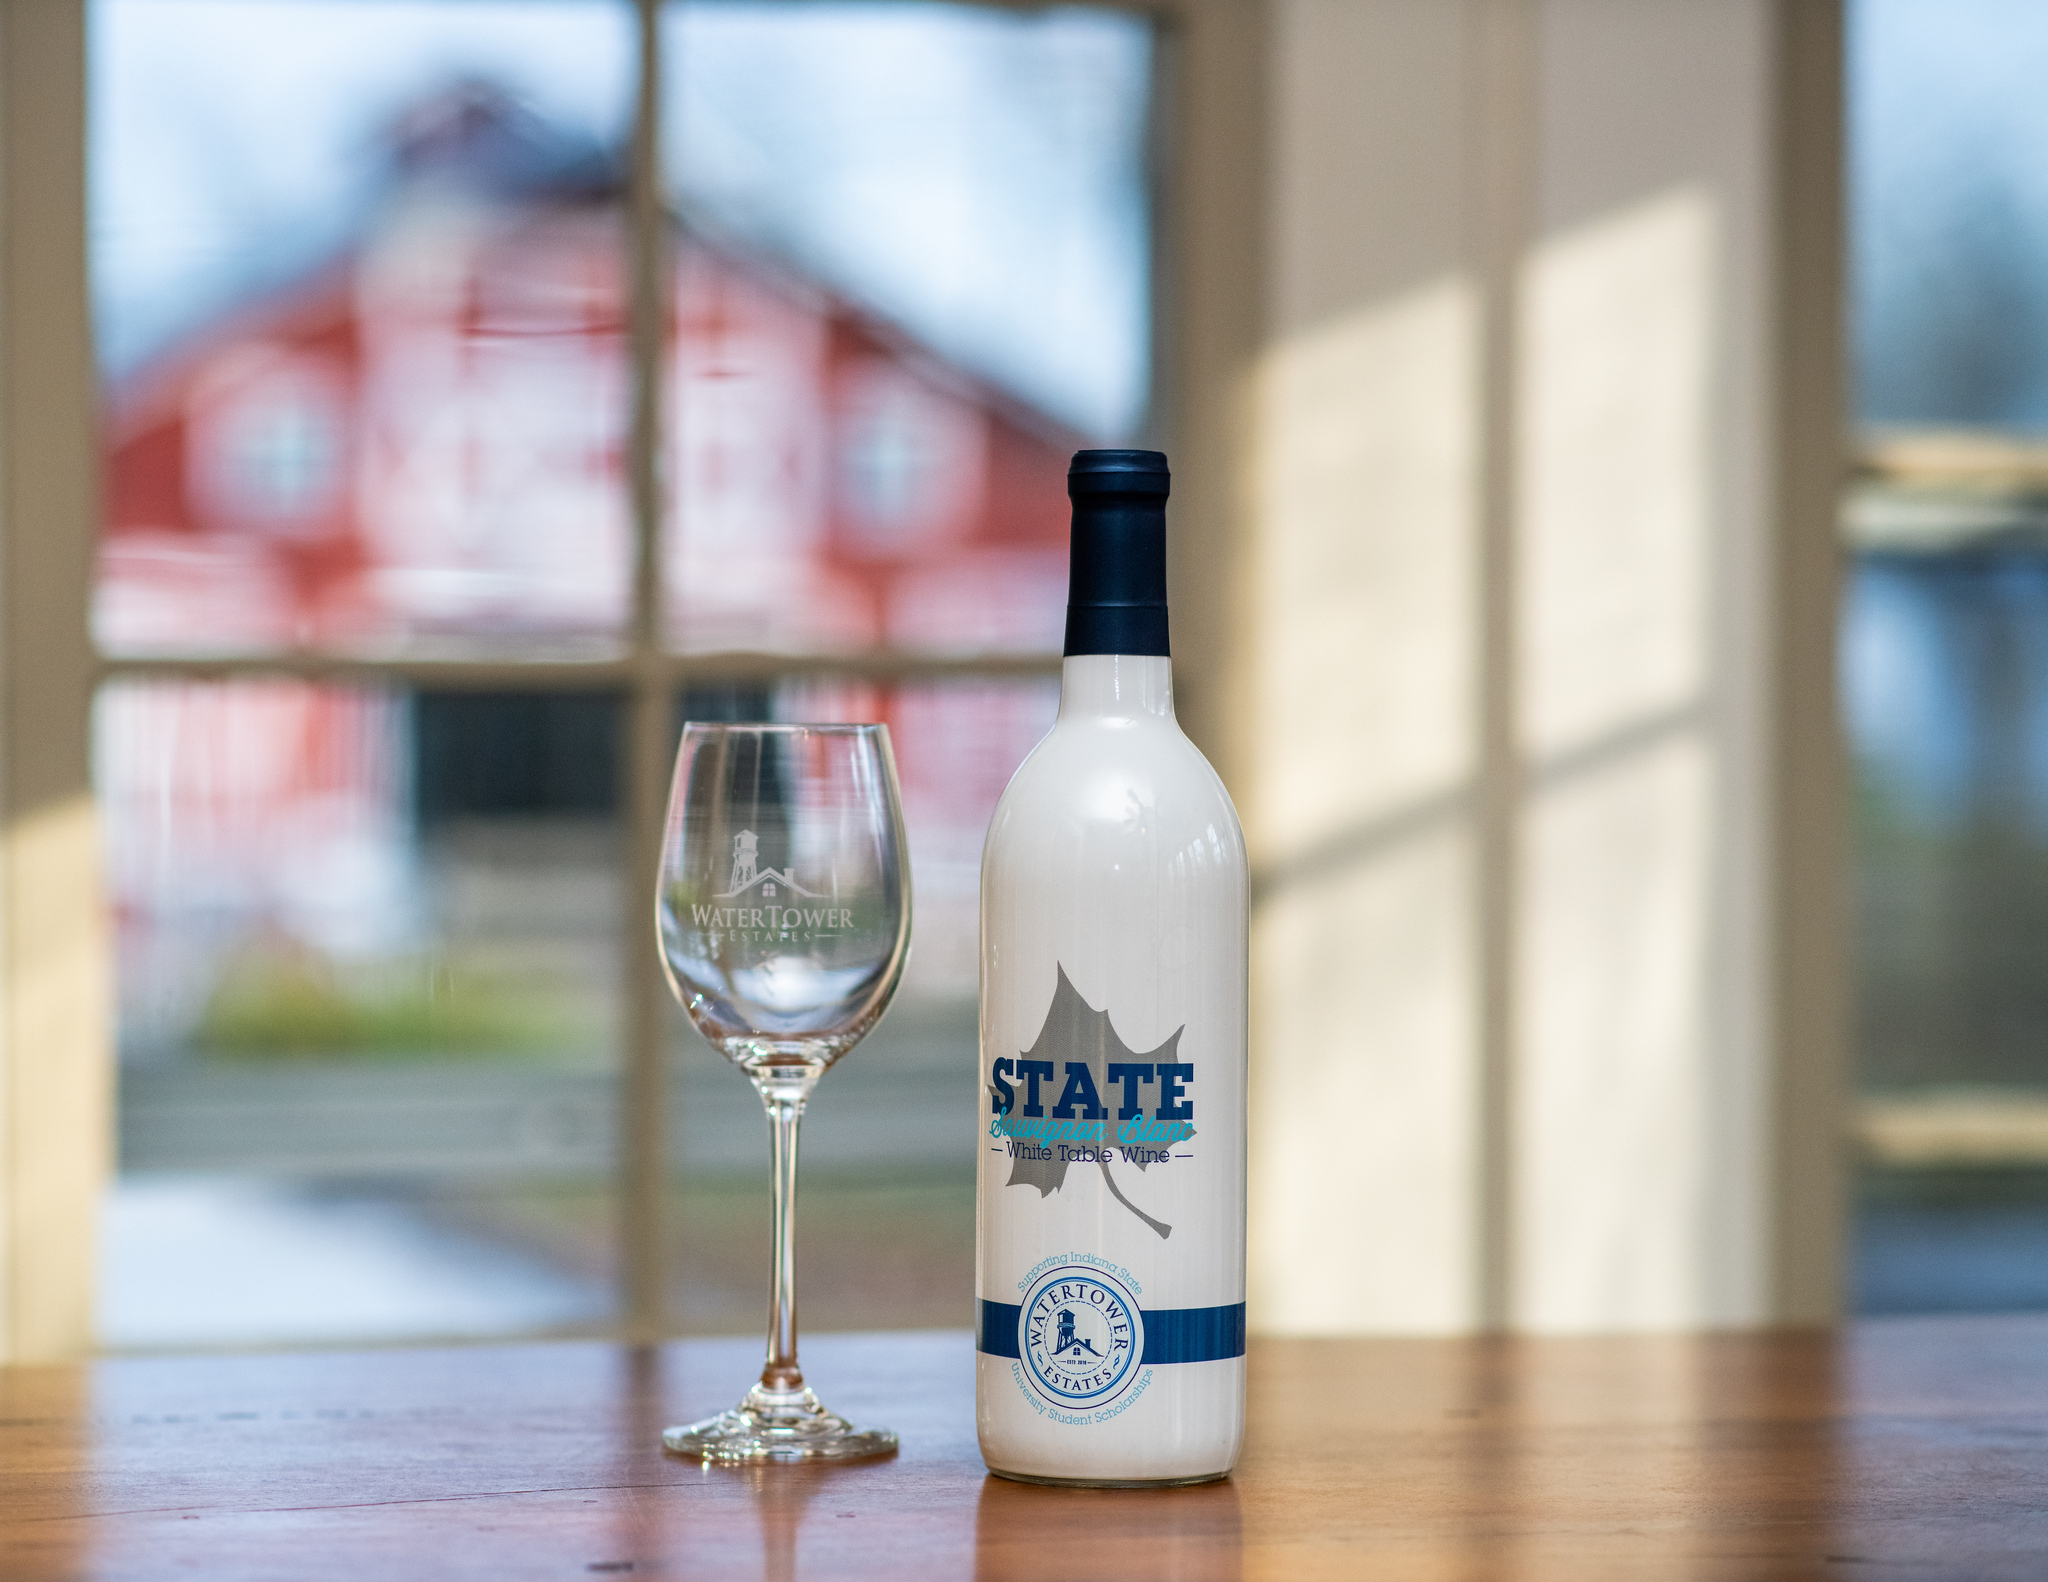 Photo of glass and State Sauvignon Blanc bottle